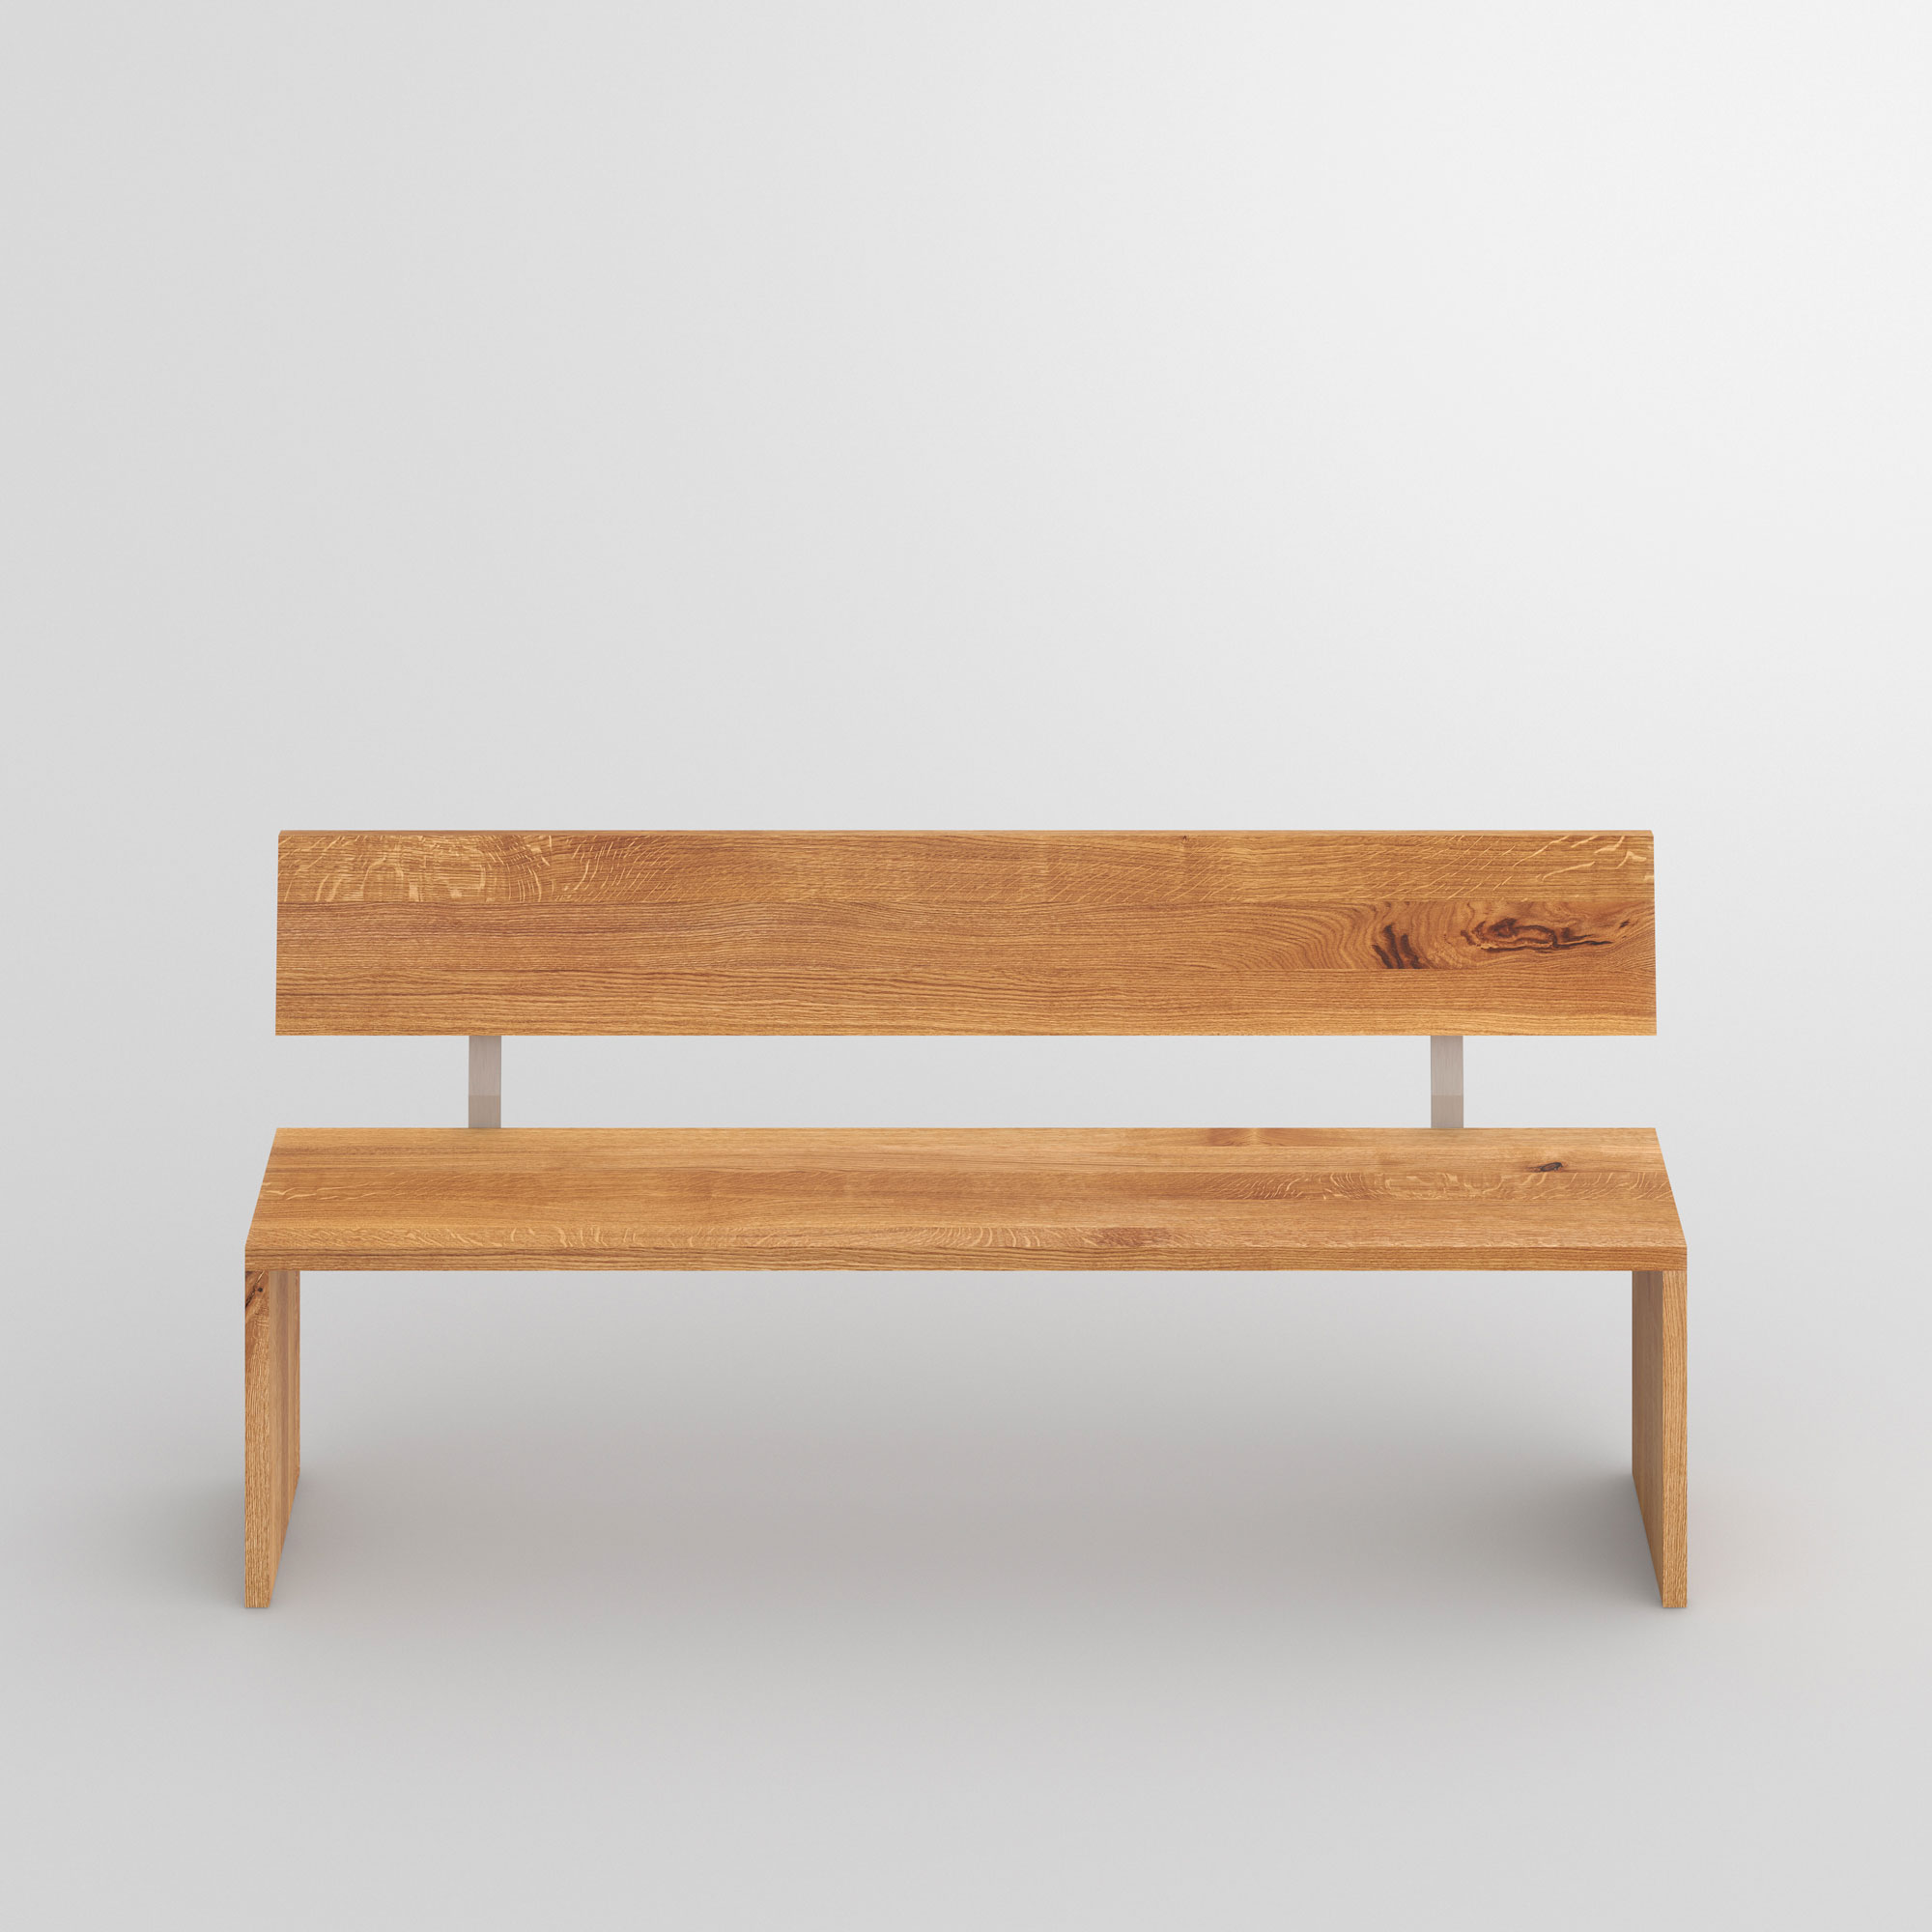 Solid Wood Bench MENA 3 cam2 custom made in solid wood by vitamin design